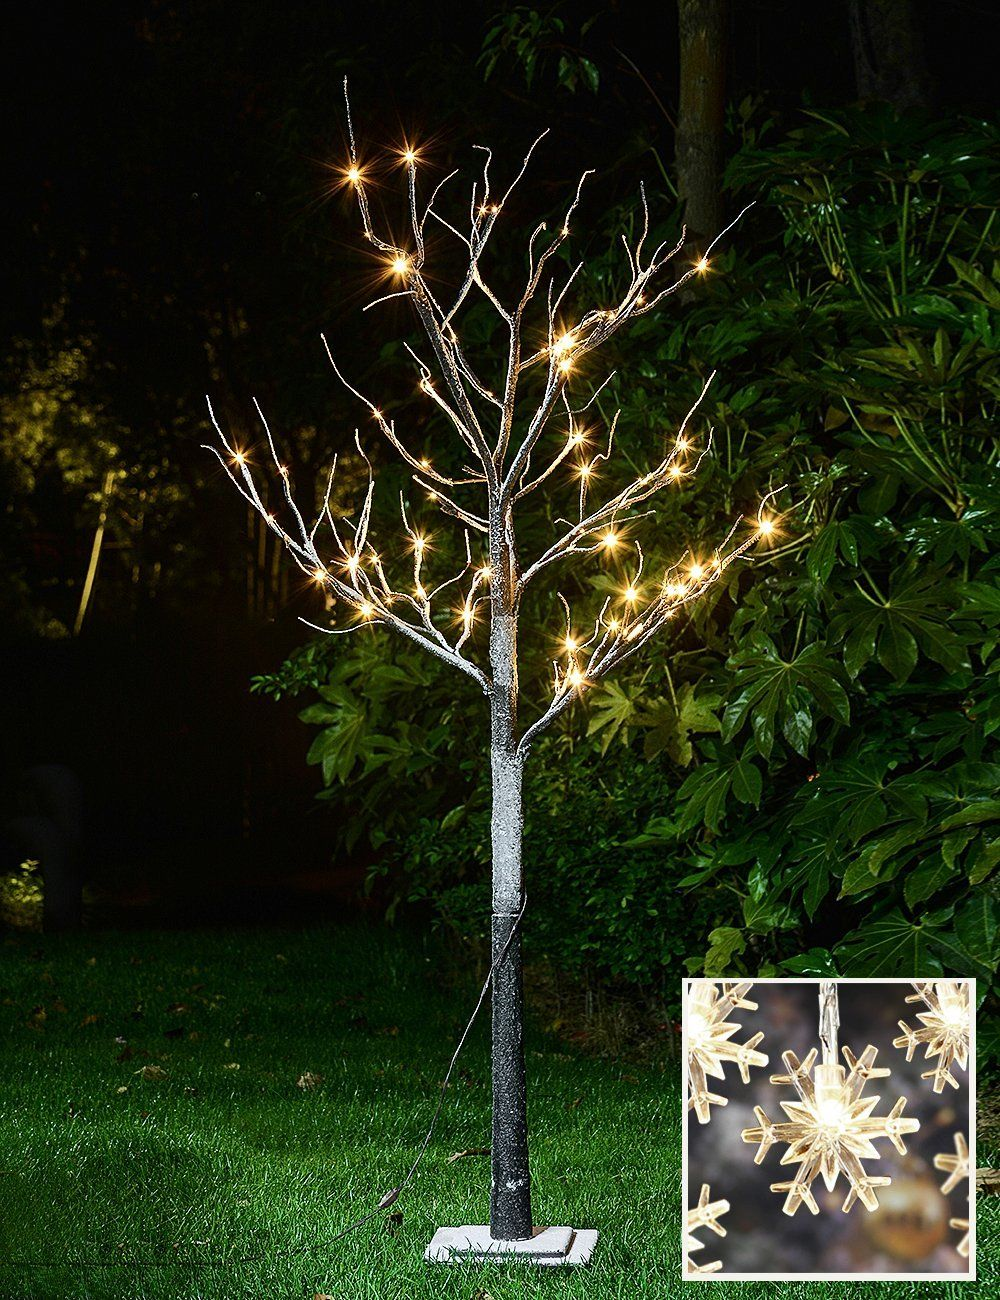 Lightshare New 5ft 72l Led Snow Tree For Party Outdoor Holiday Decor White Led Lights Outdoor Christmas Decorations